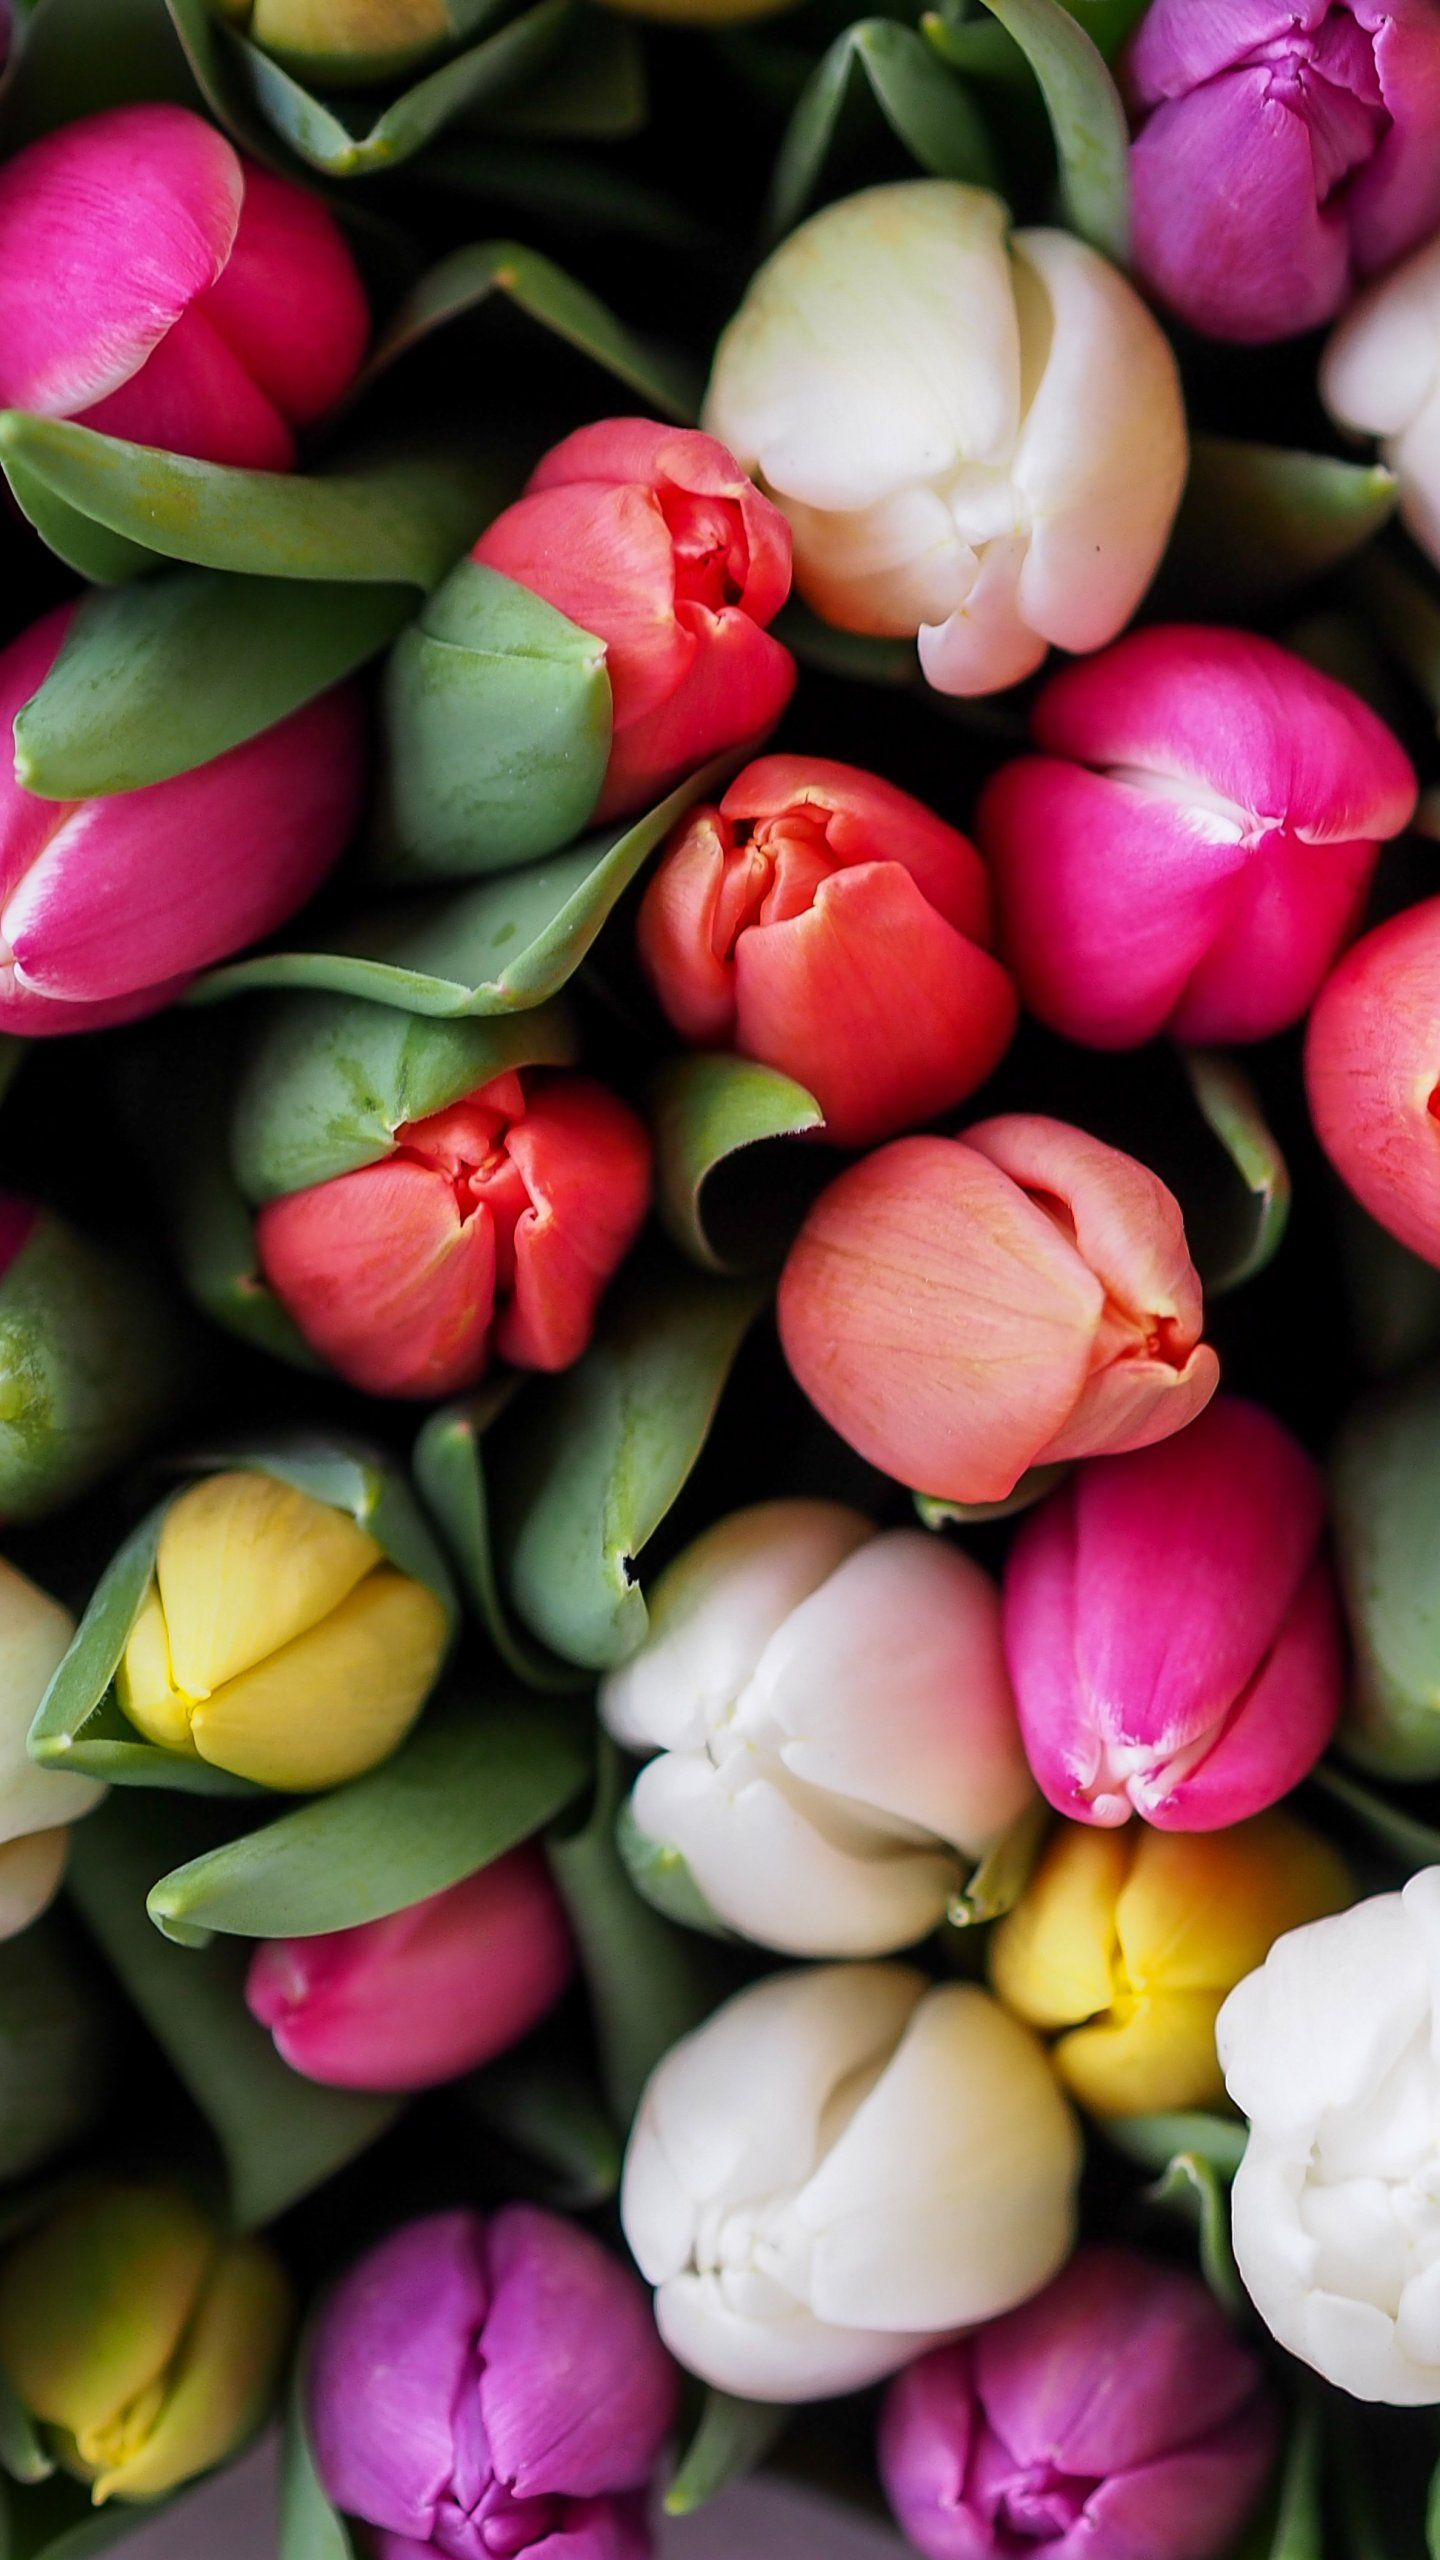 Tulips Bouquet Wallpaper Iphone Android Desktop Backgrounds Spring Flowers Background Flower Background Wallpaper Flower Backgrounds Flower wallpaper for mobile phone